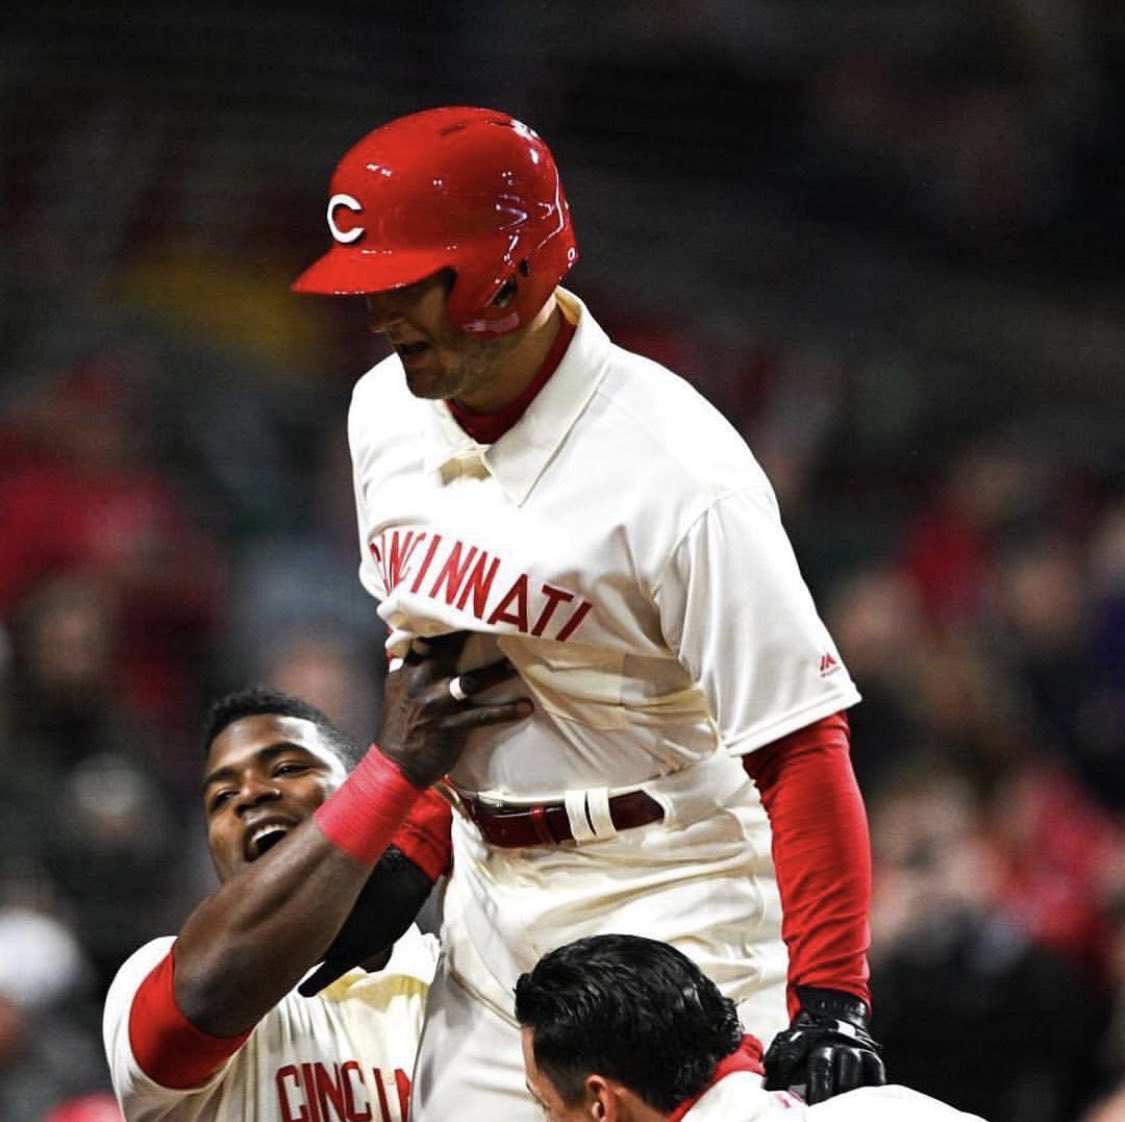 First home run game for my teammate @LilSenzii happy to having you in the show!